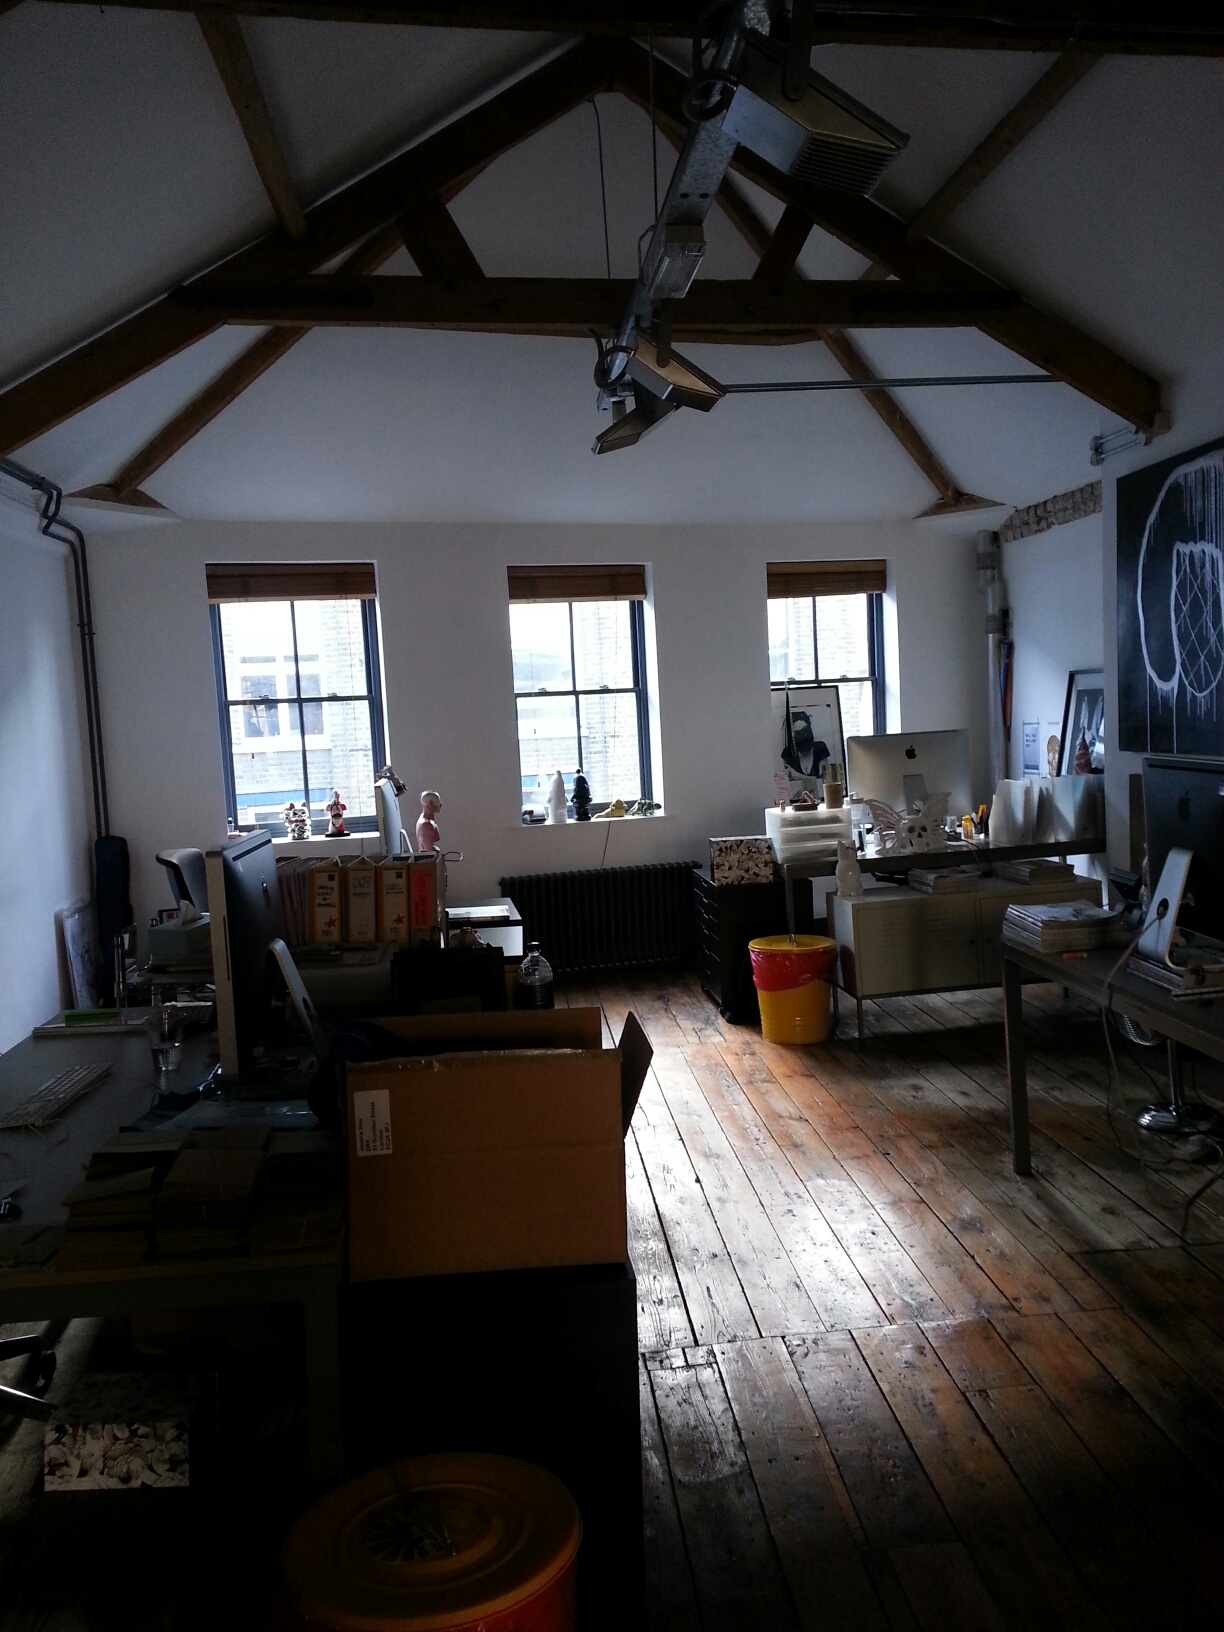 Small shoreditch office to let in heart of tech city shoreditch office space helping you find - Small office space london property ...